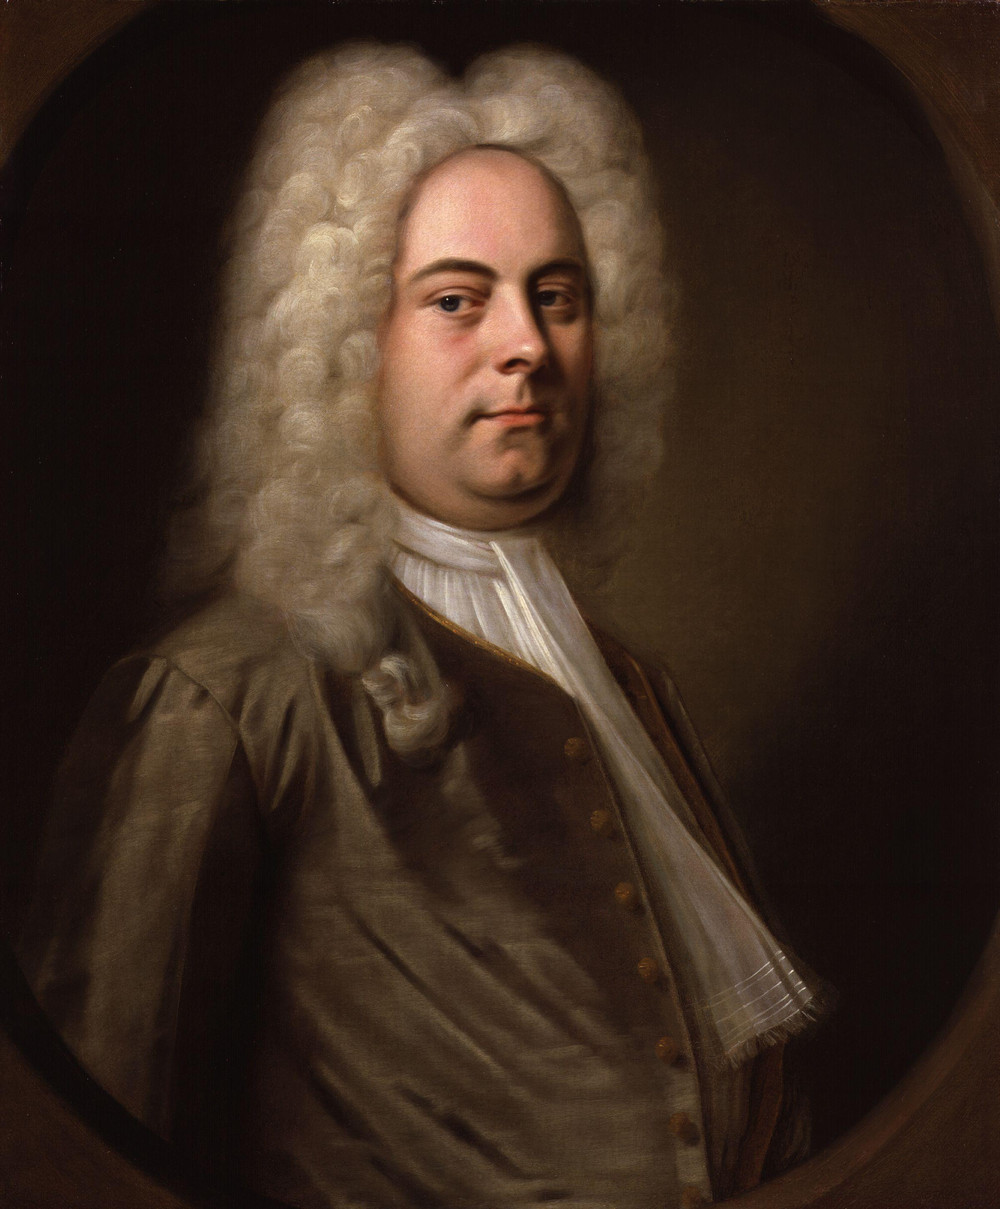 the life and works of the greatest composer georg fredrich handel